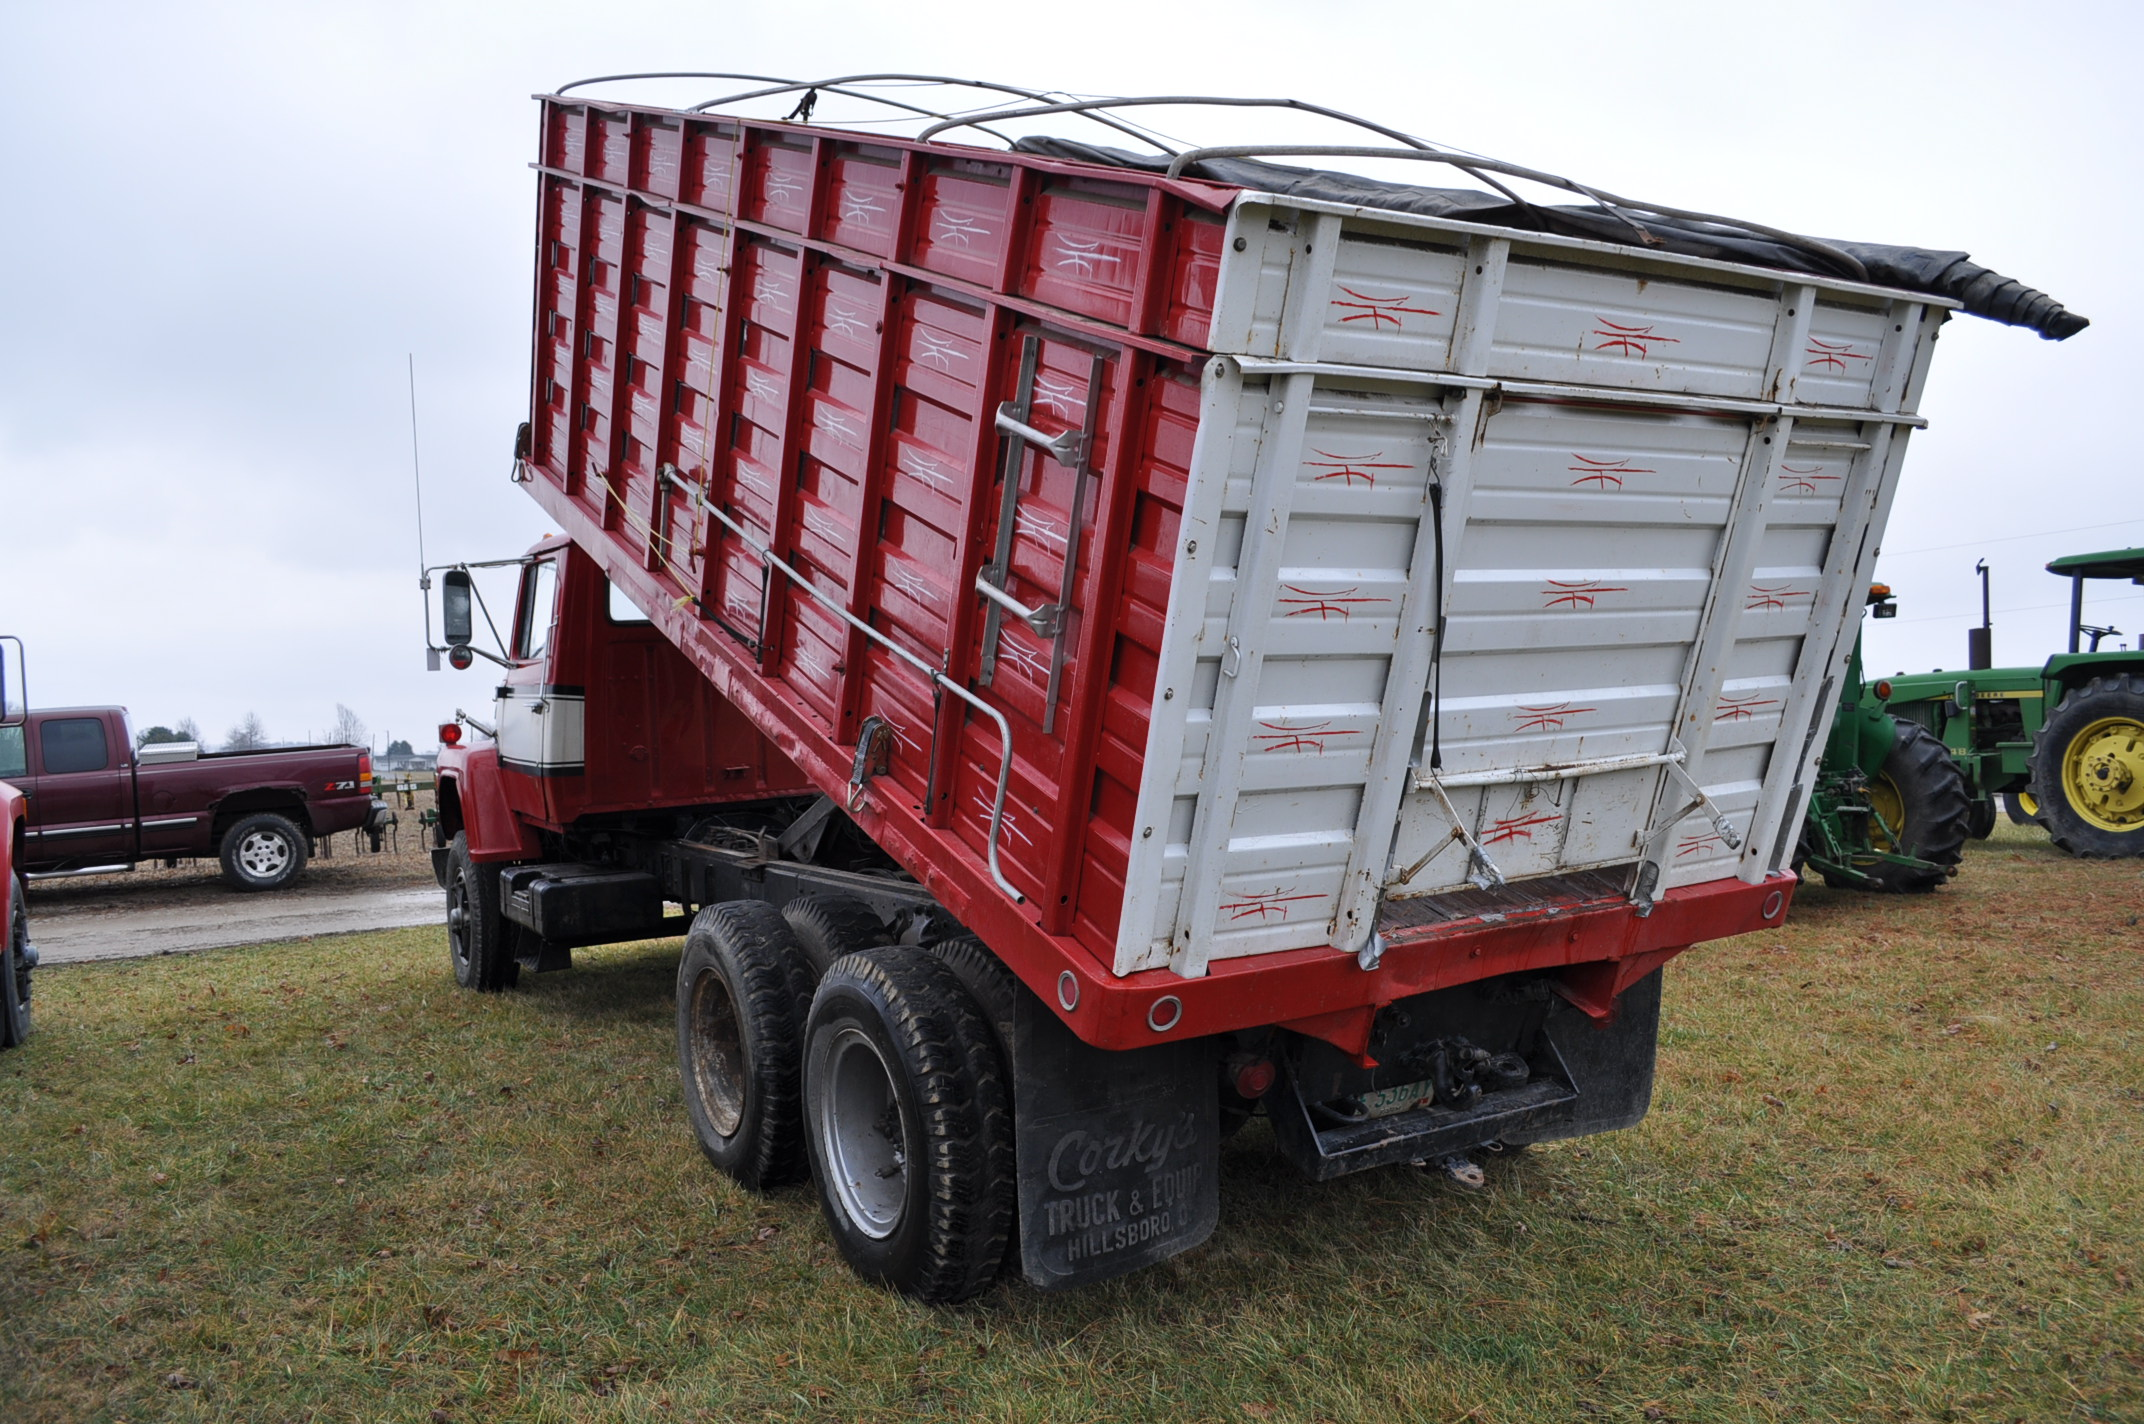 1974 Ford 900 grain truck, tandem axle, gas V-8, 5 + 2, 10.00-20 tires, 18' wood floor, pto, - Image 2 of 26